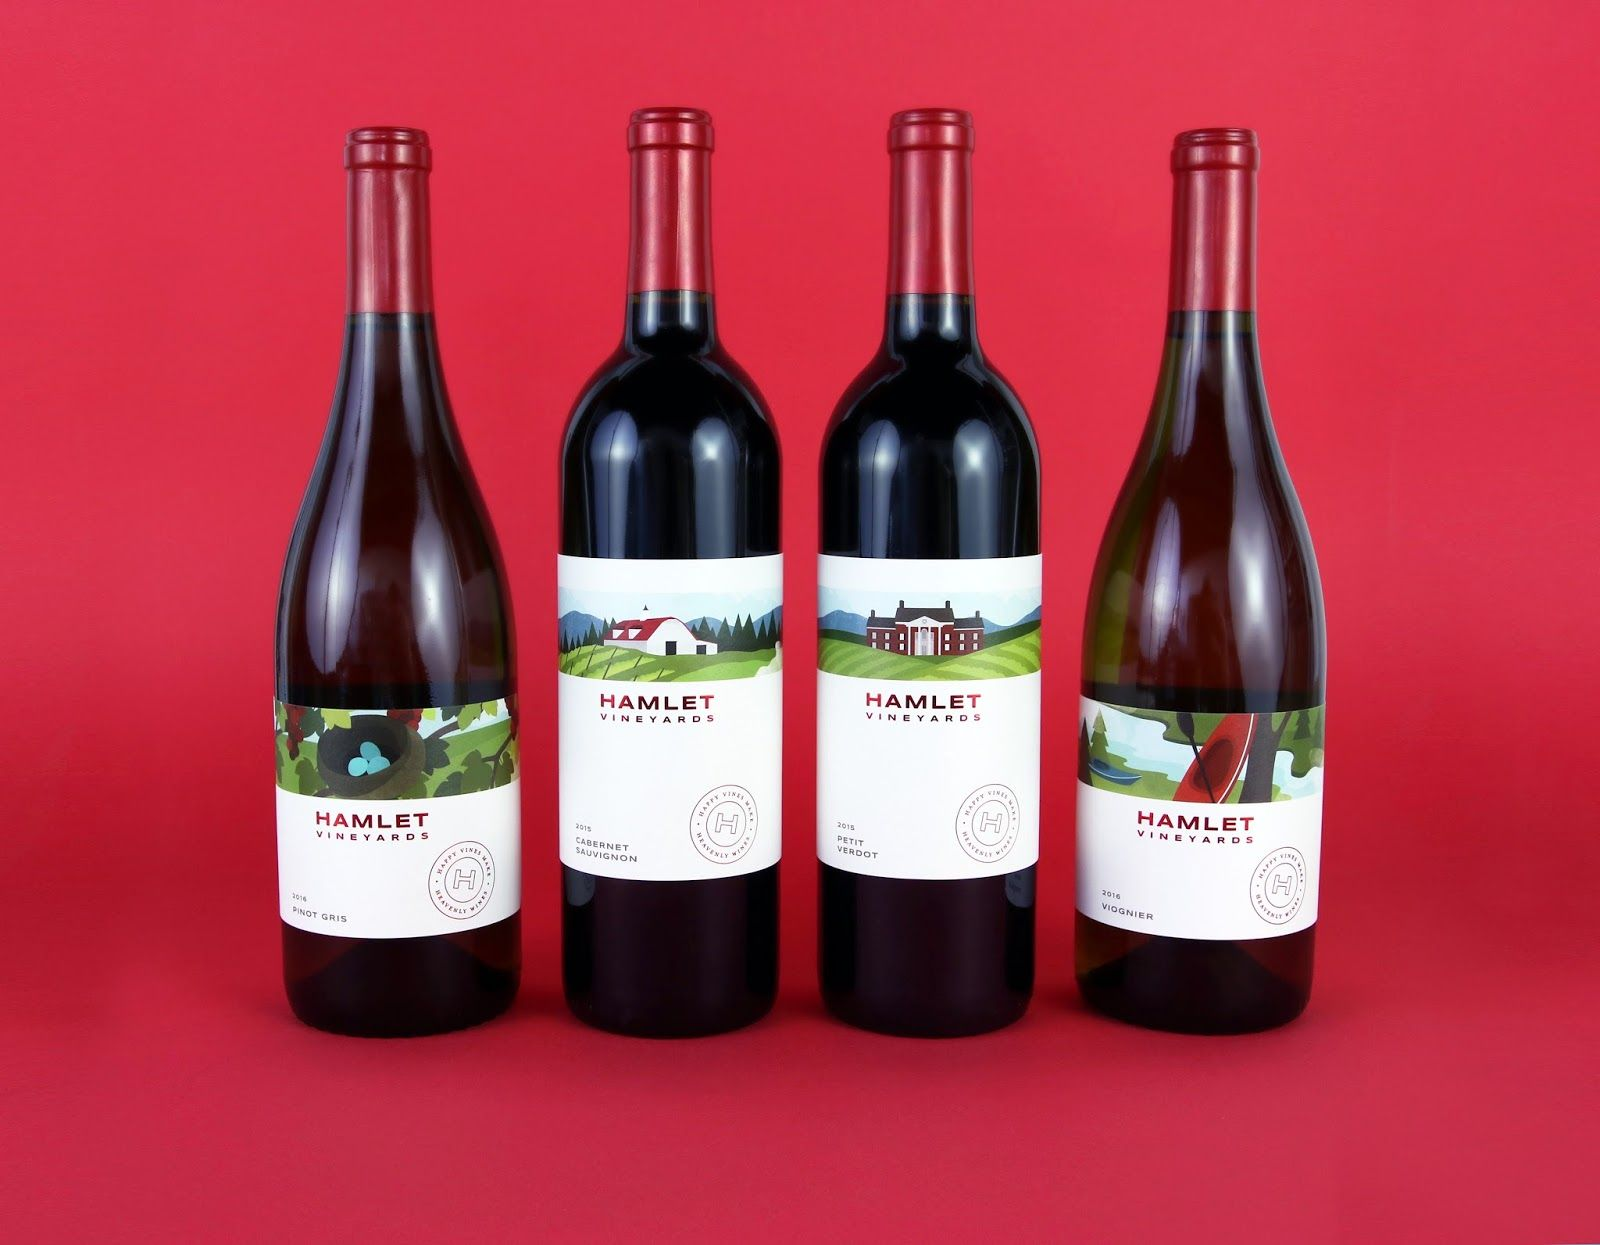 Hamlet Vineyards Modern Wine Labels Watermark Design Creative Packaging Design